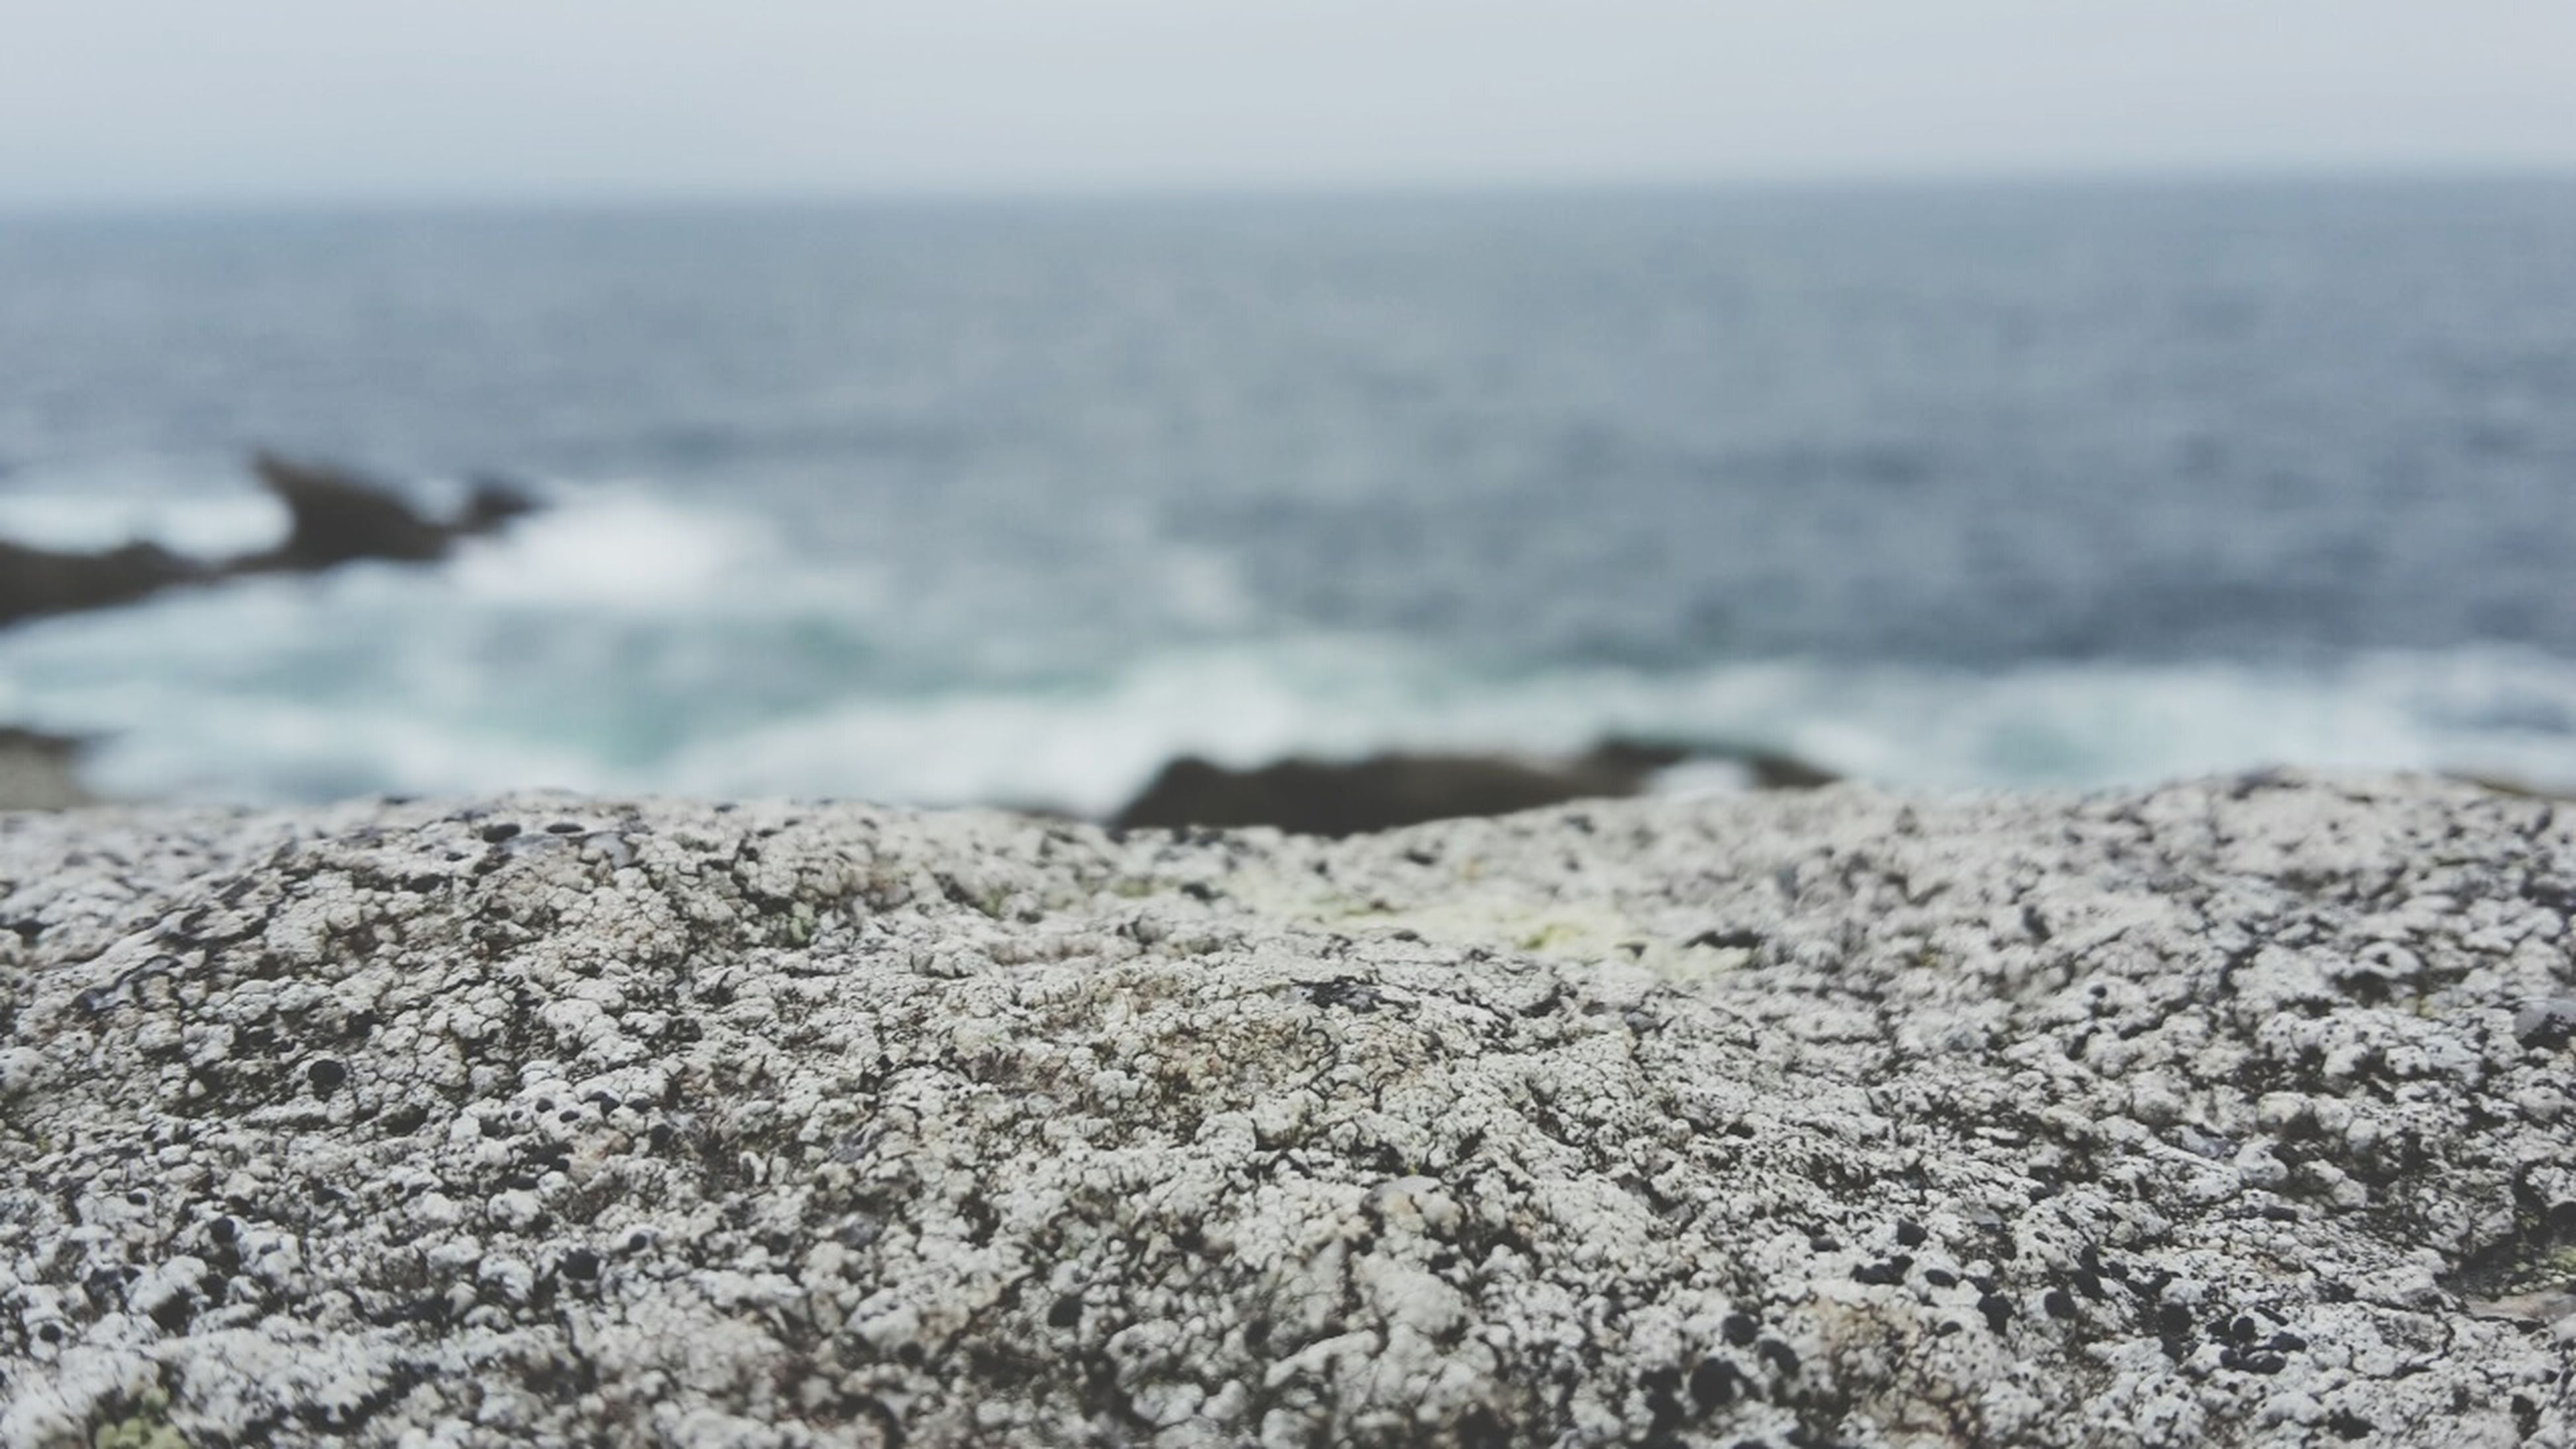 sea, beach, water, shore, horizon over water, tranquility, nature, tranquil scene, pebble, beauty in nature, scenics, focus on foreground, rock - object, sand, selective focus, surface level, stone - object, day, close-up, wave